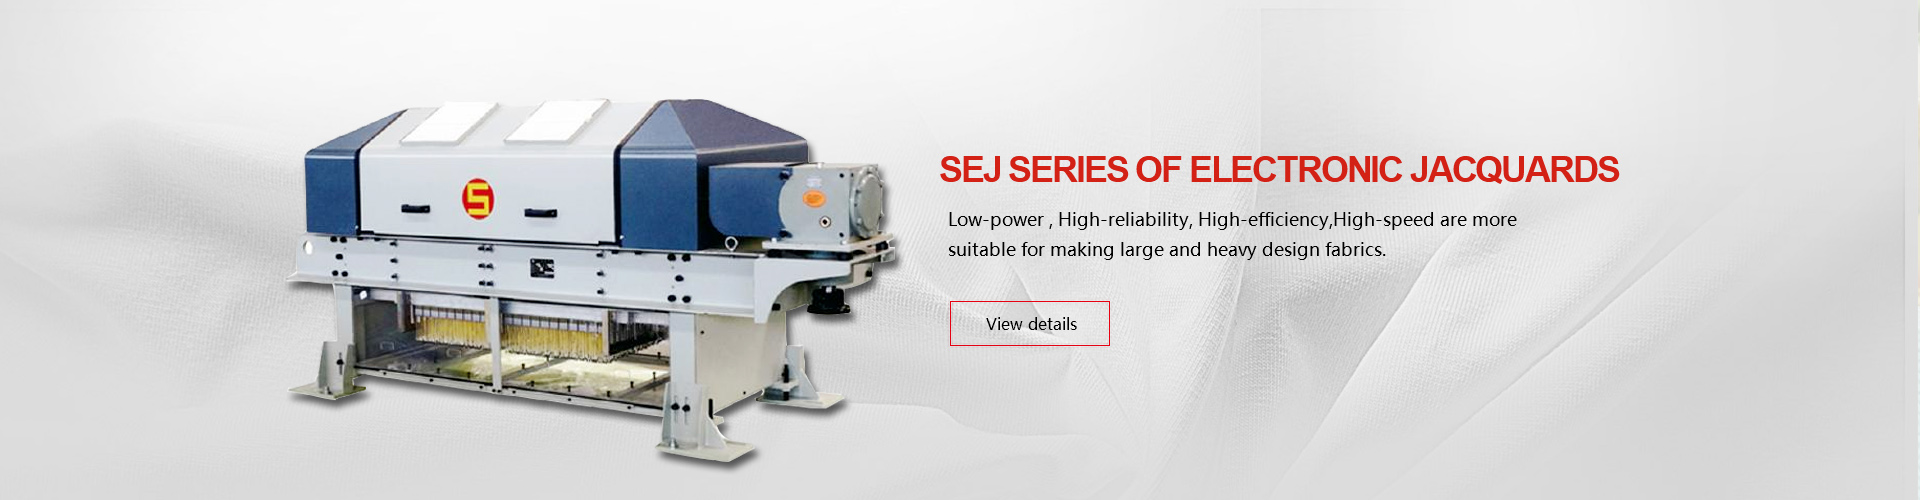 SEJ Series Of Electronic Jacquards